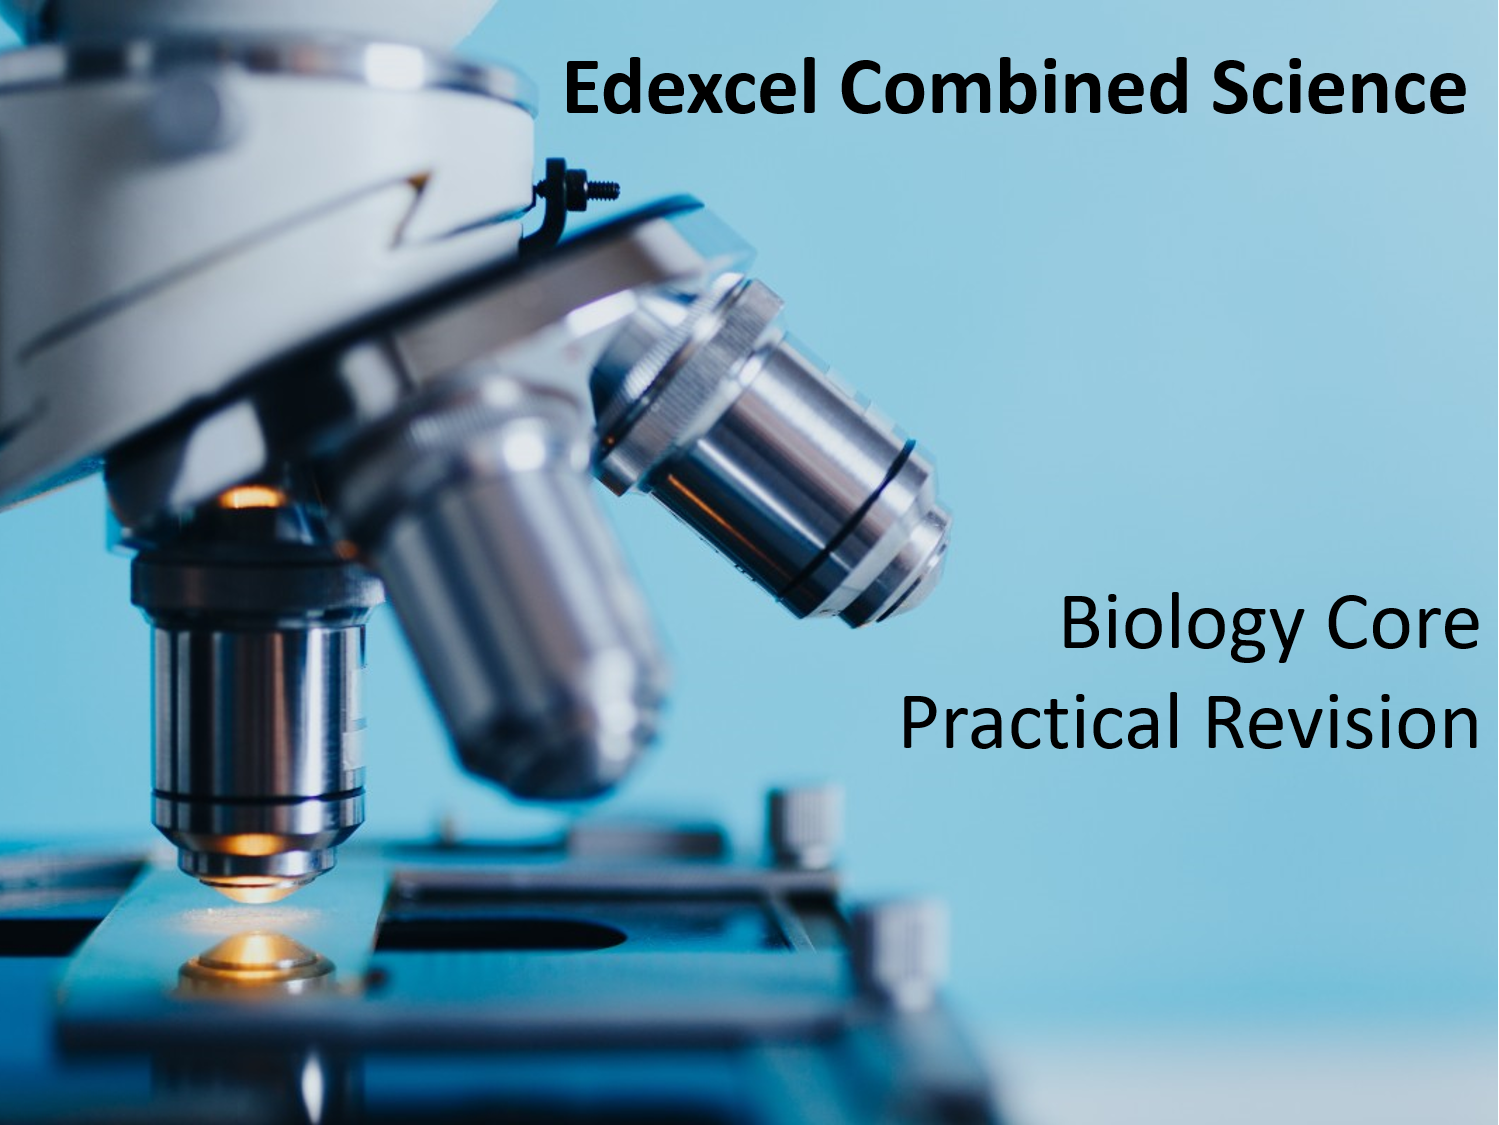 Edexcel Combined Science Biology Core Practical Revision